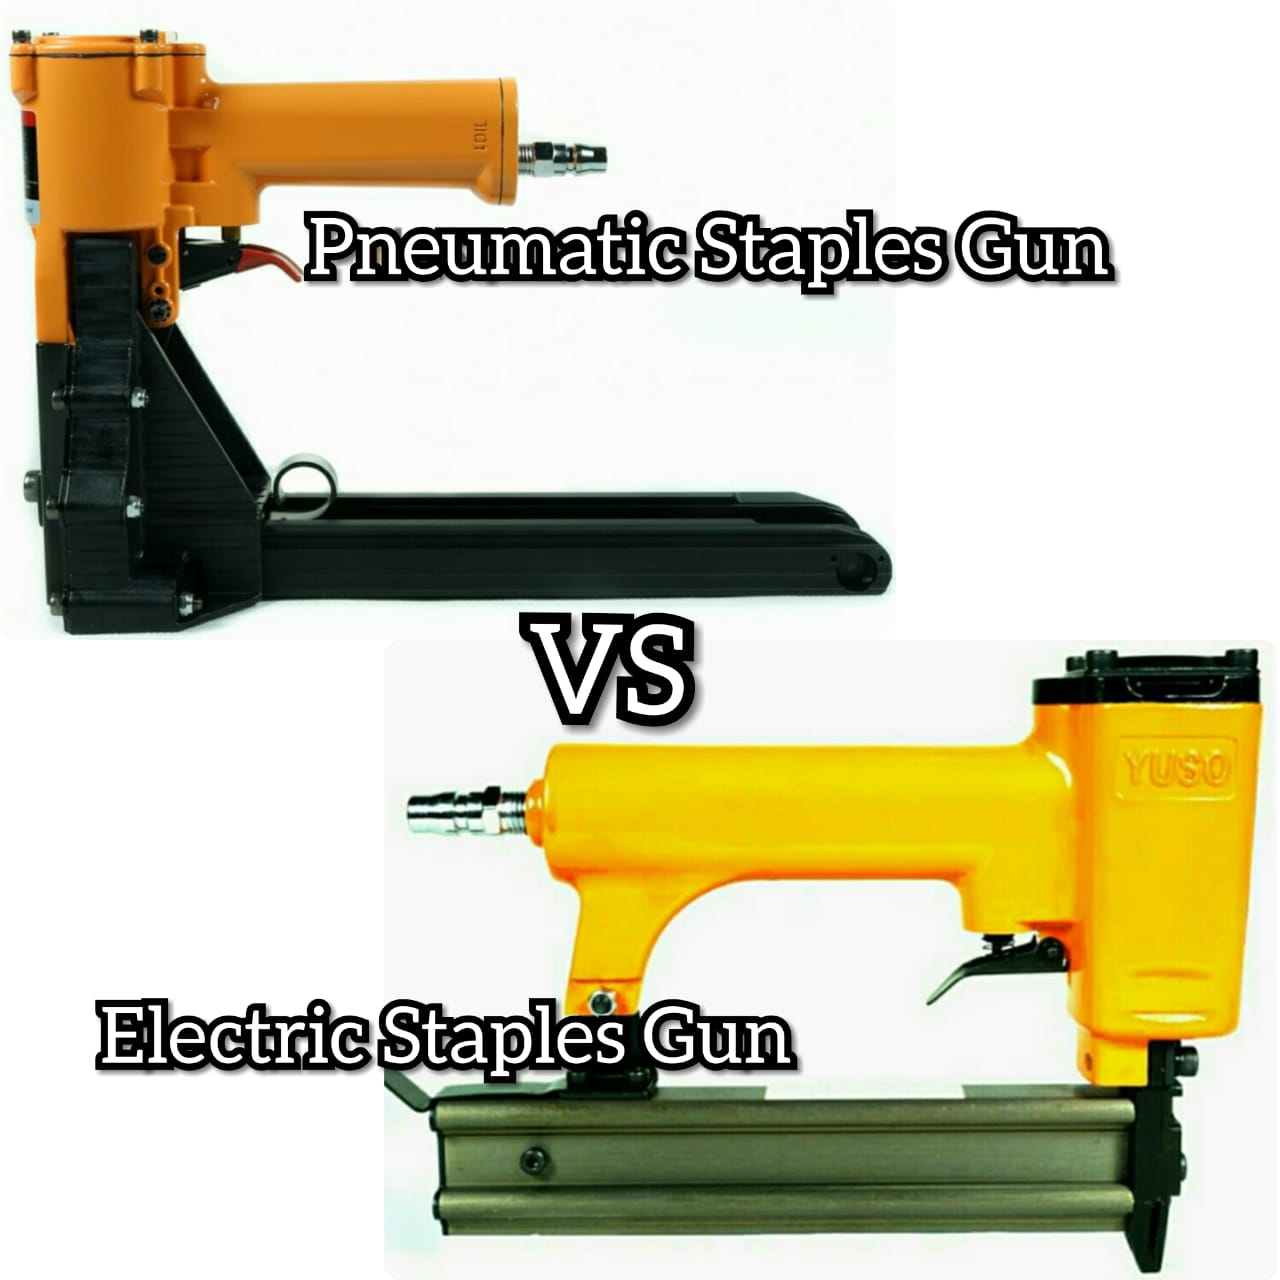 Pneumatic Staple Gun vs Electric Staple Gun